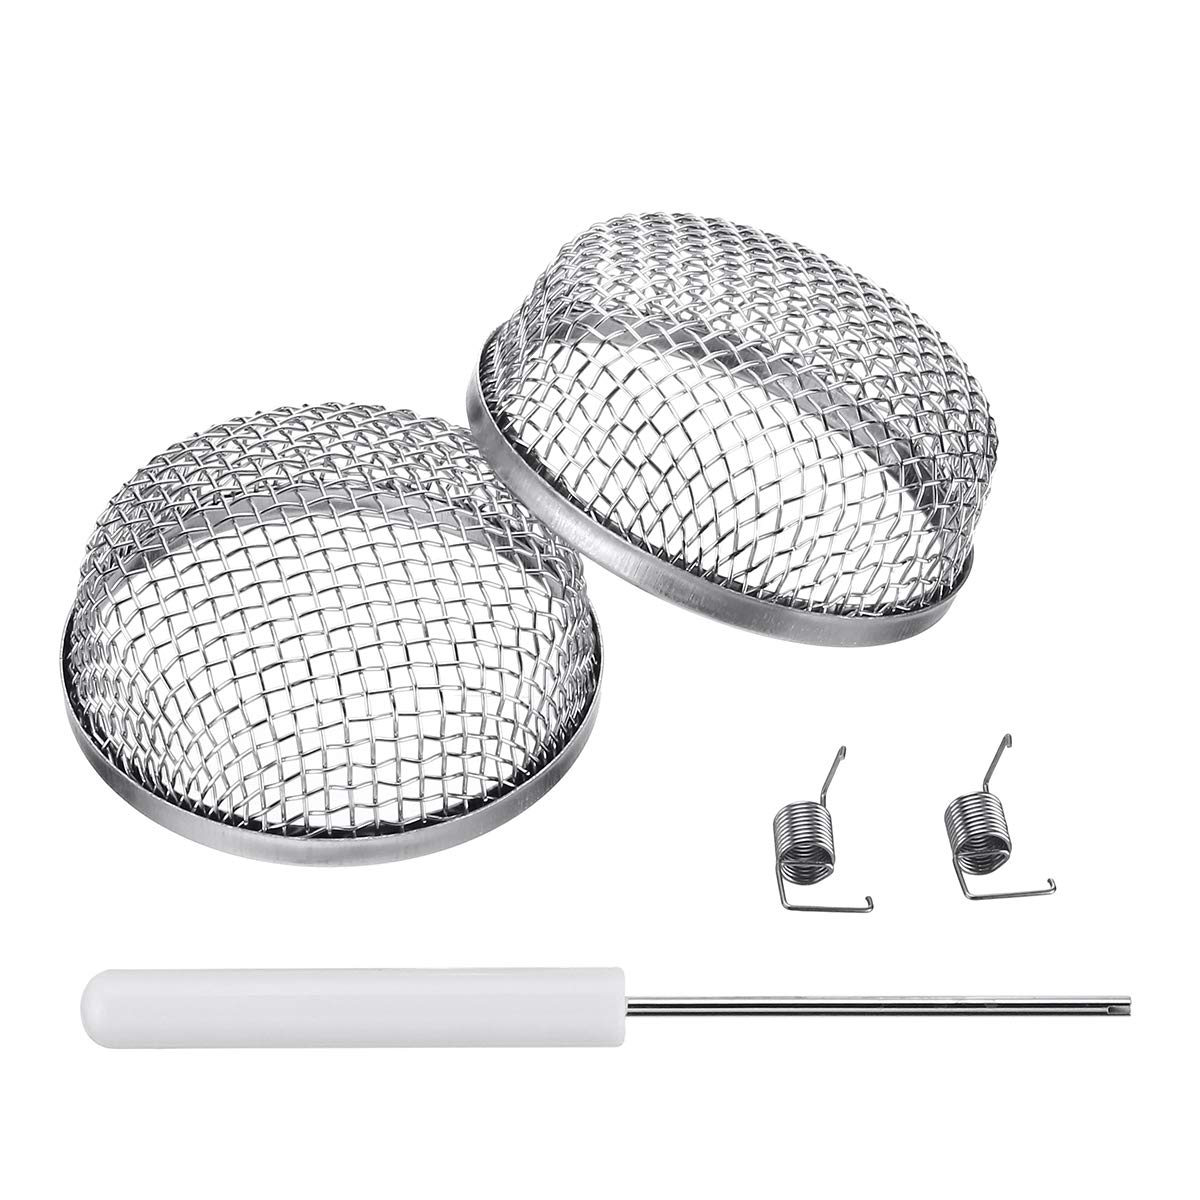 "Miady RV Furnace Vent Screen - 2 Pack Flying Insect Bug Cover Camper Heater Exhaust Vents - 2.8"" Stainless Steel Mesh Screens - Installation Tool Included"